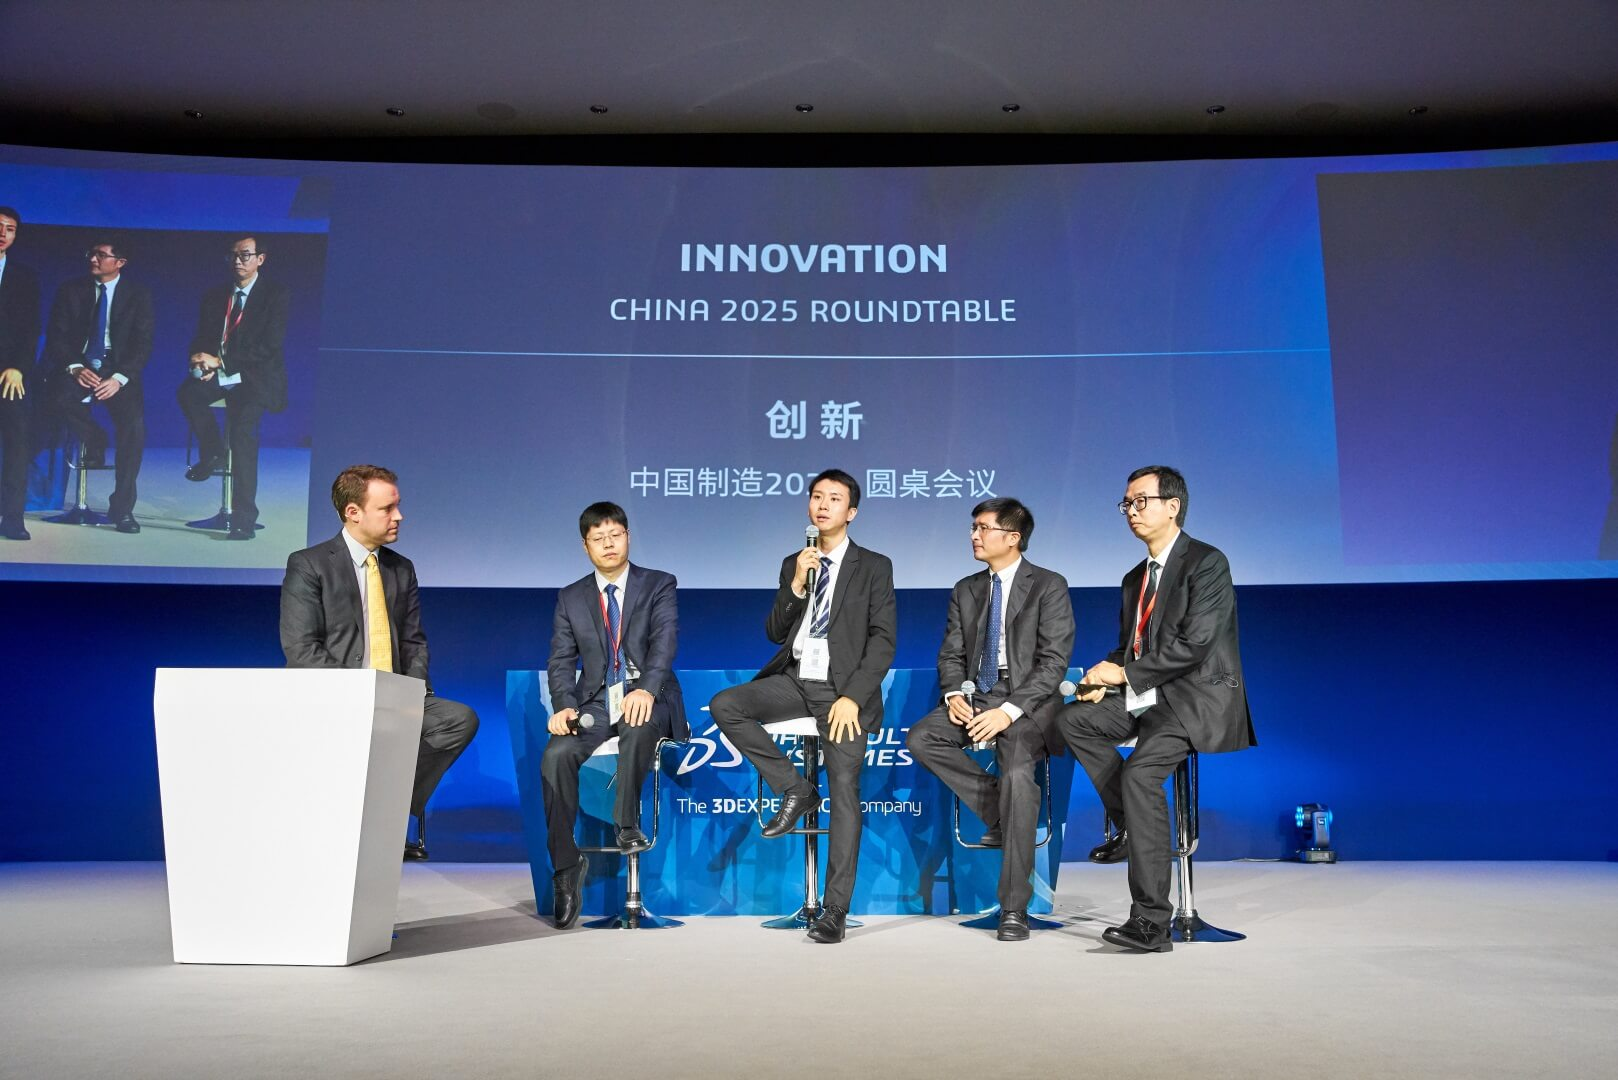 Innovation Roundtable China 2025